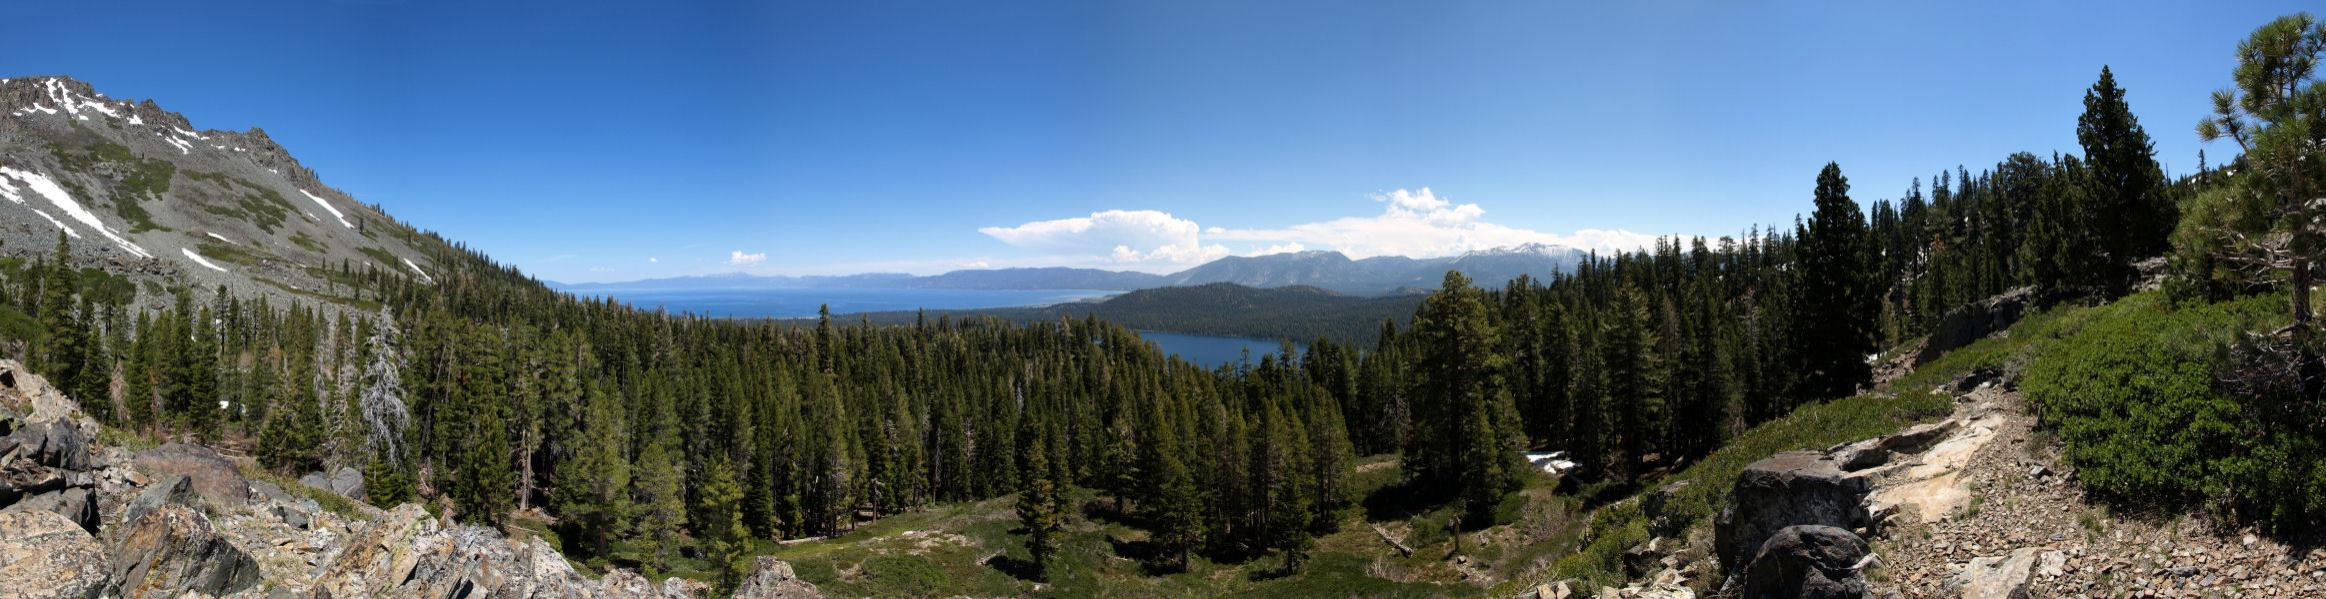 2009-05-23_Lake_Tahoe_0019.jpg